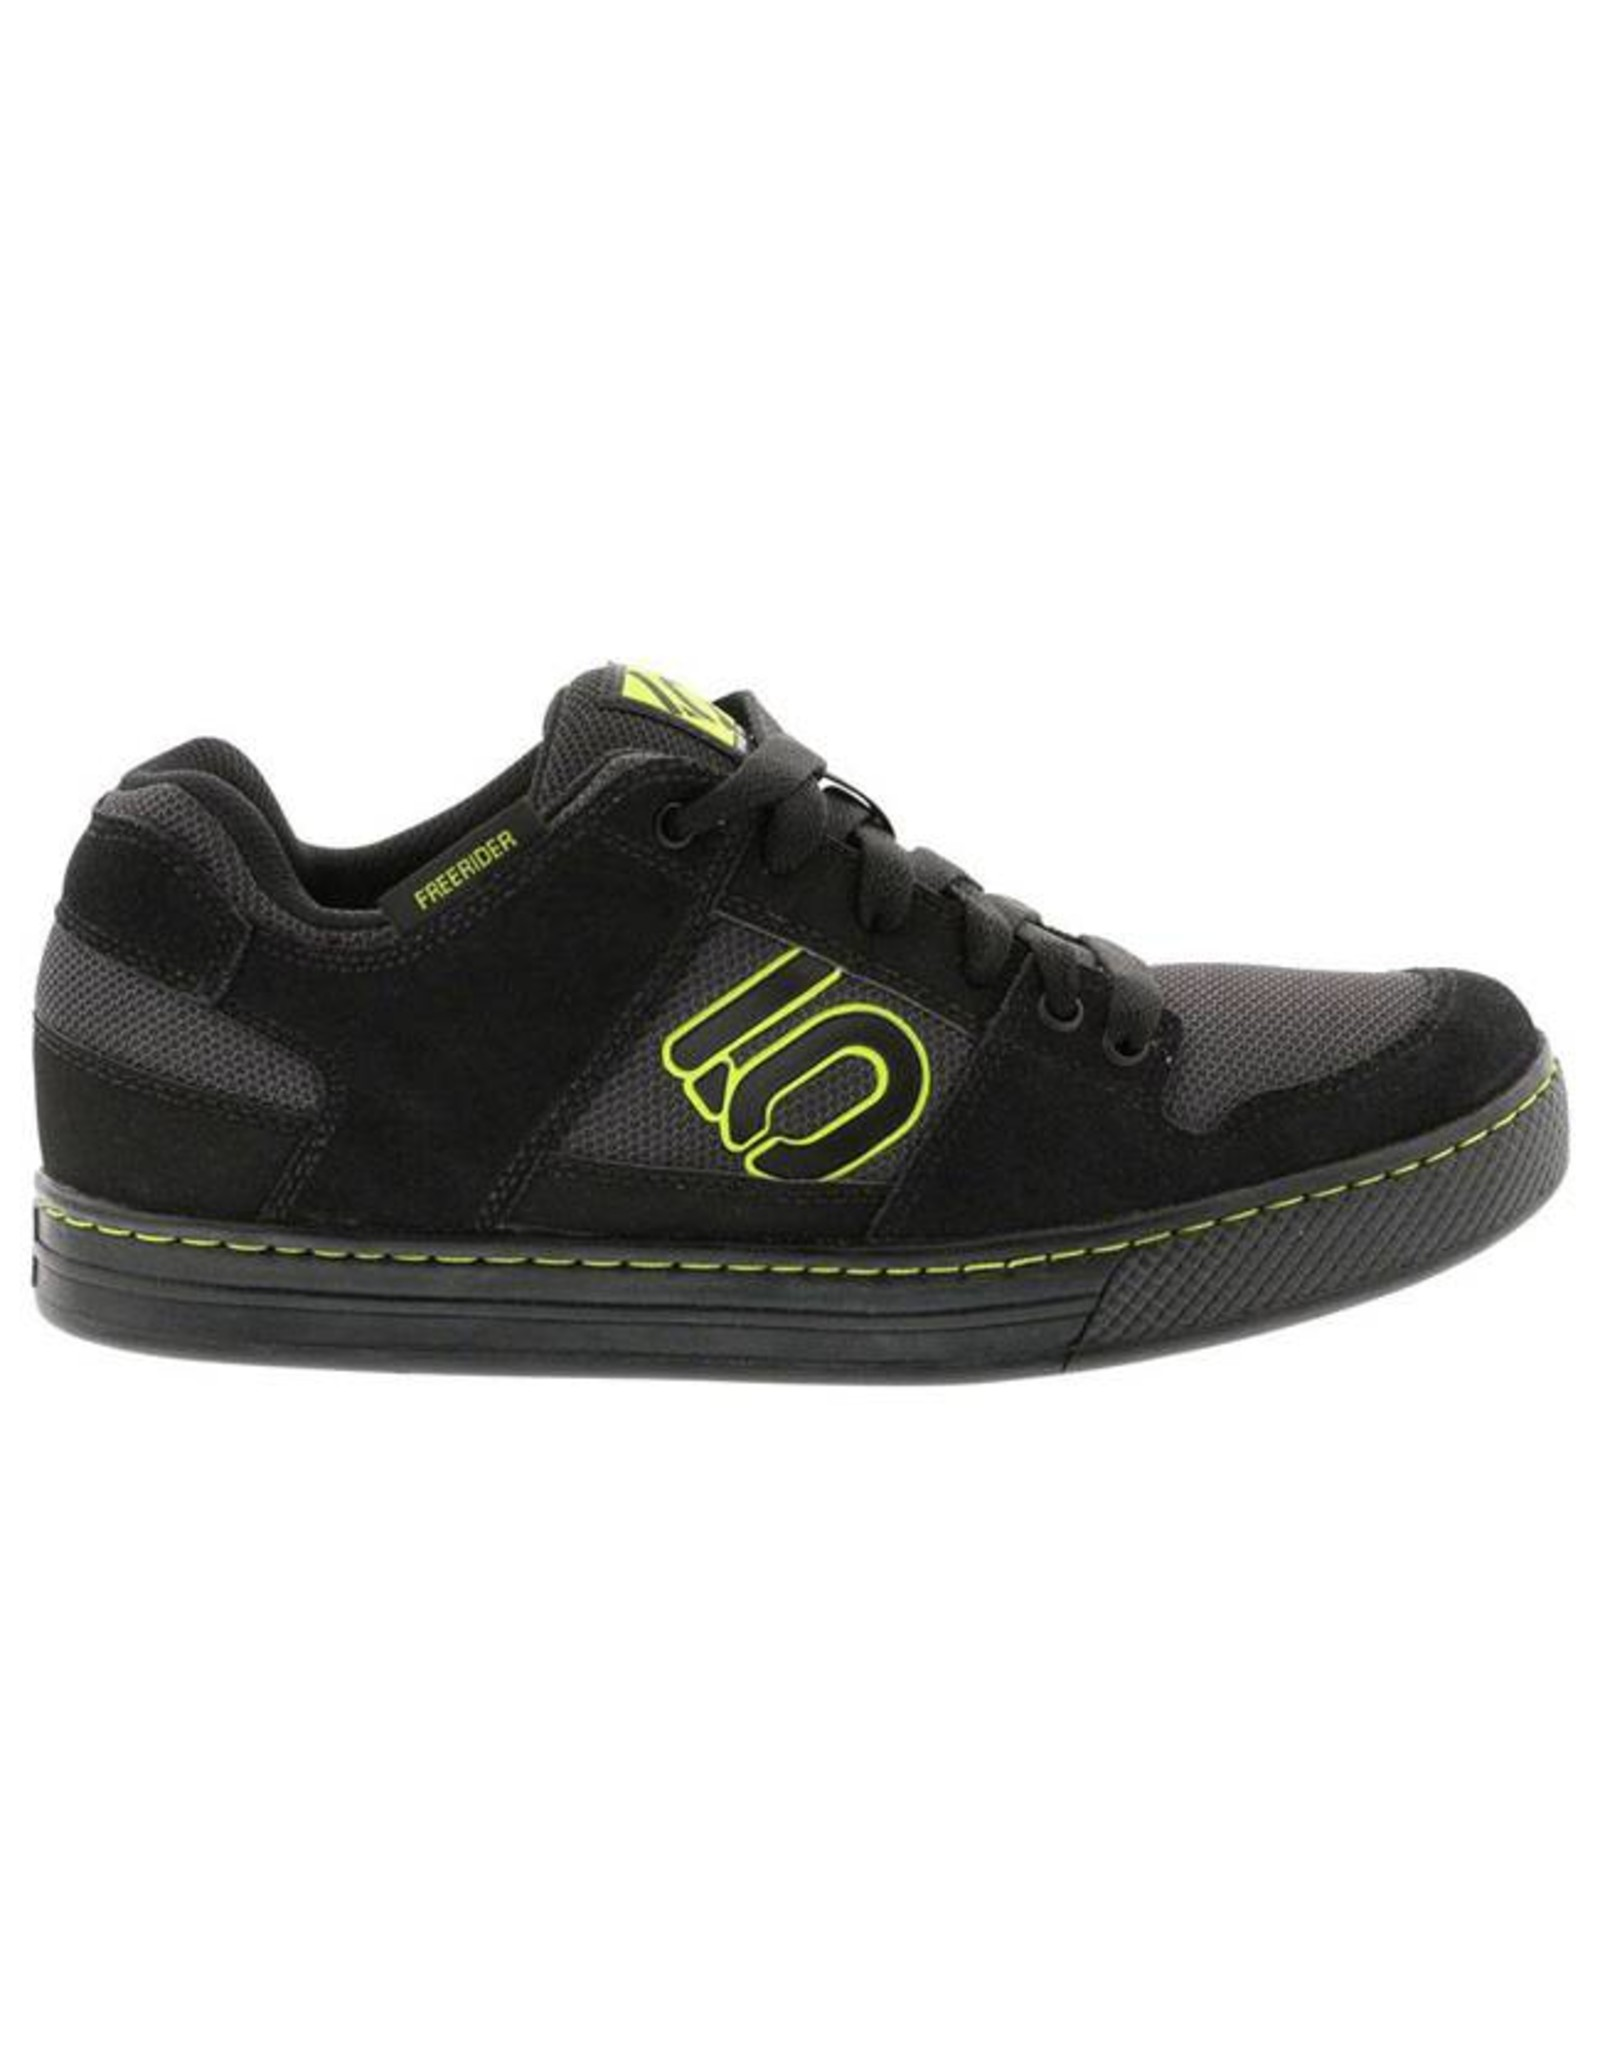 Five Ten Five Ten Freerider Men's Flat Pedal Shoe: Black Slime 9.5